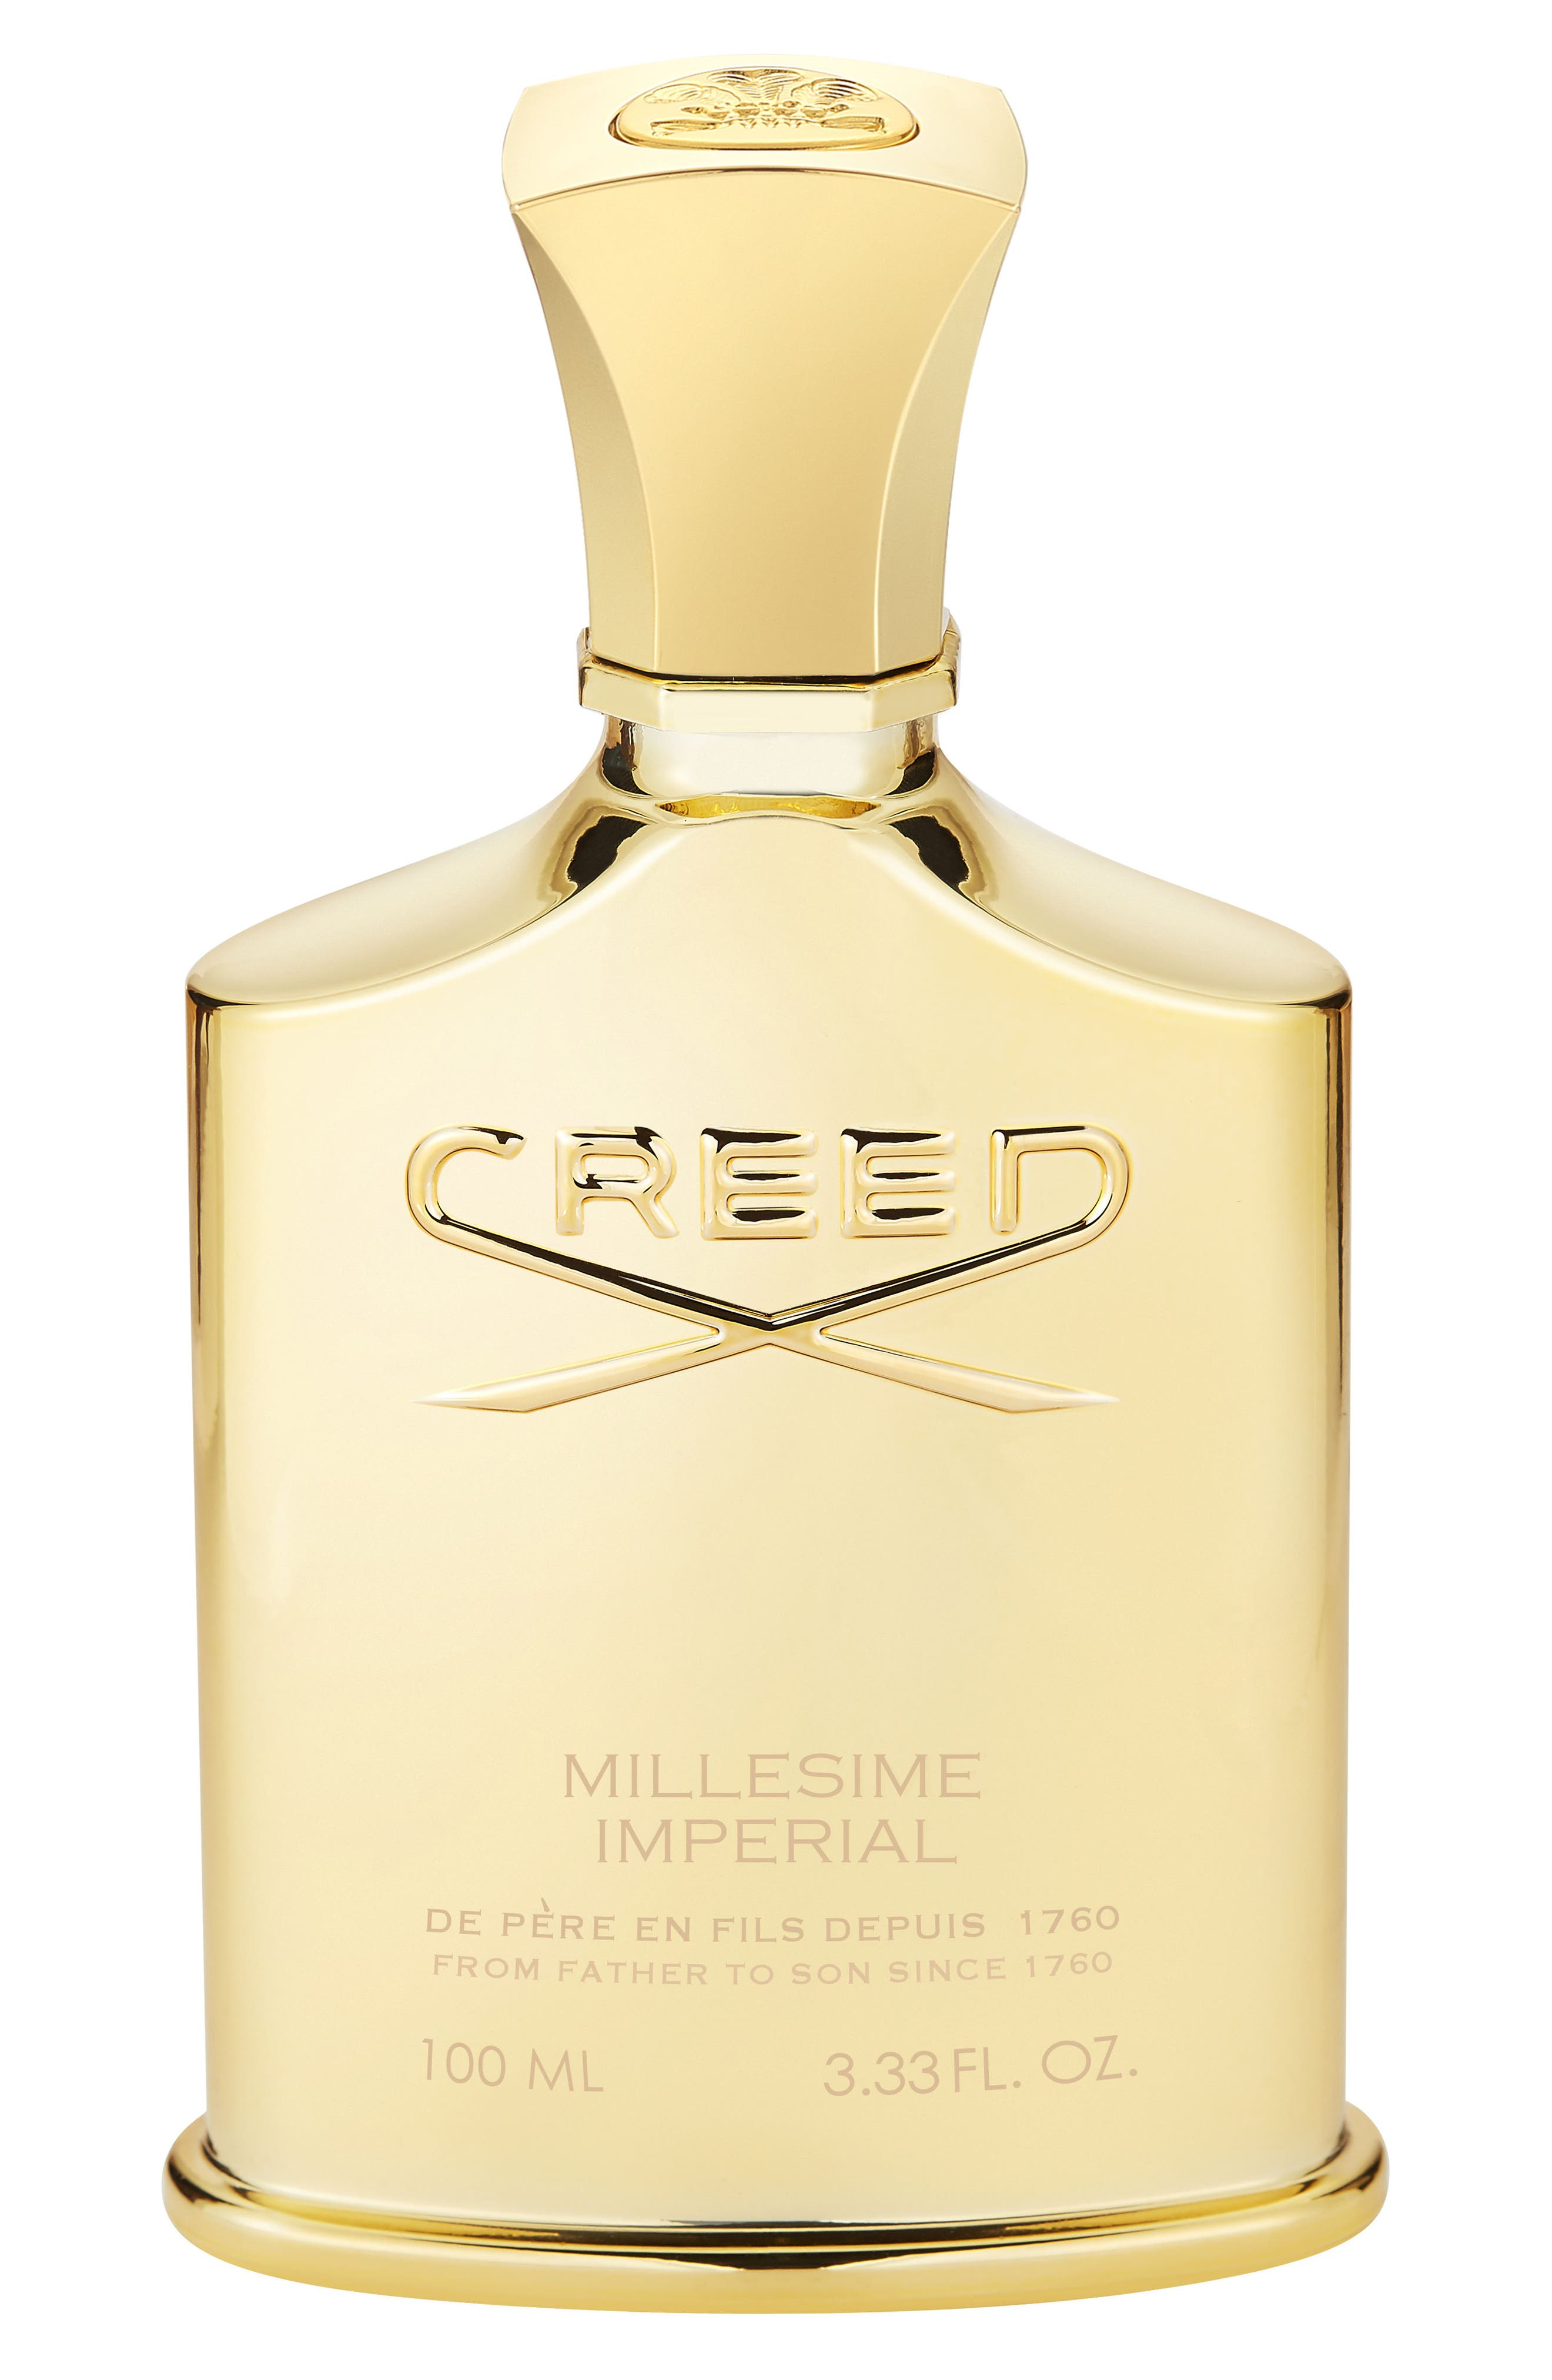 Creed 'Millésime Imperial' Fragrance